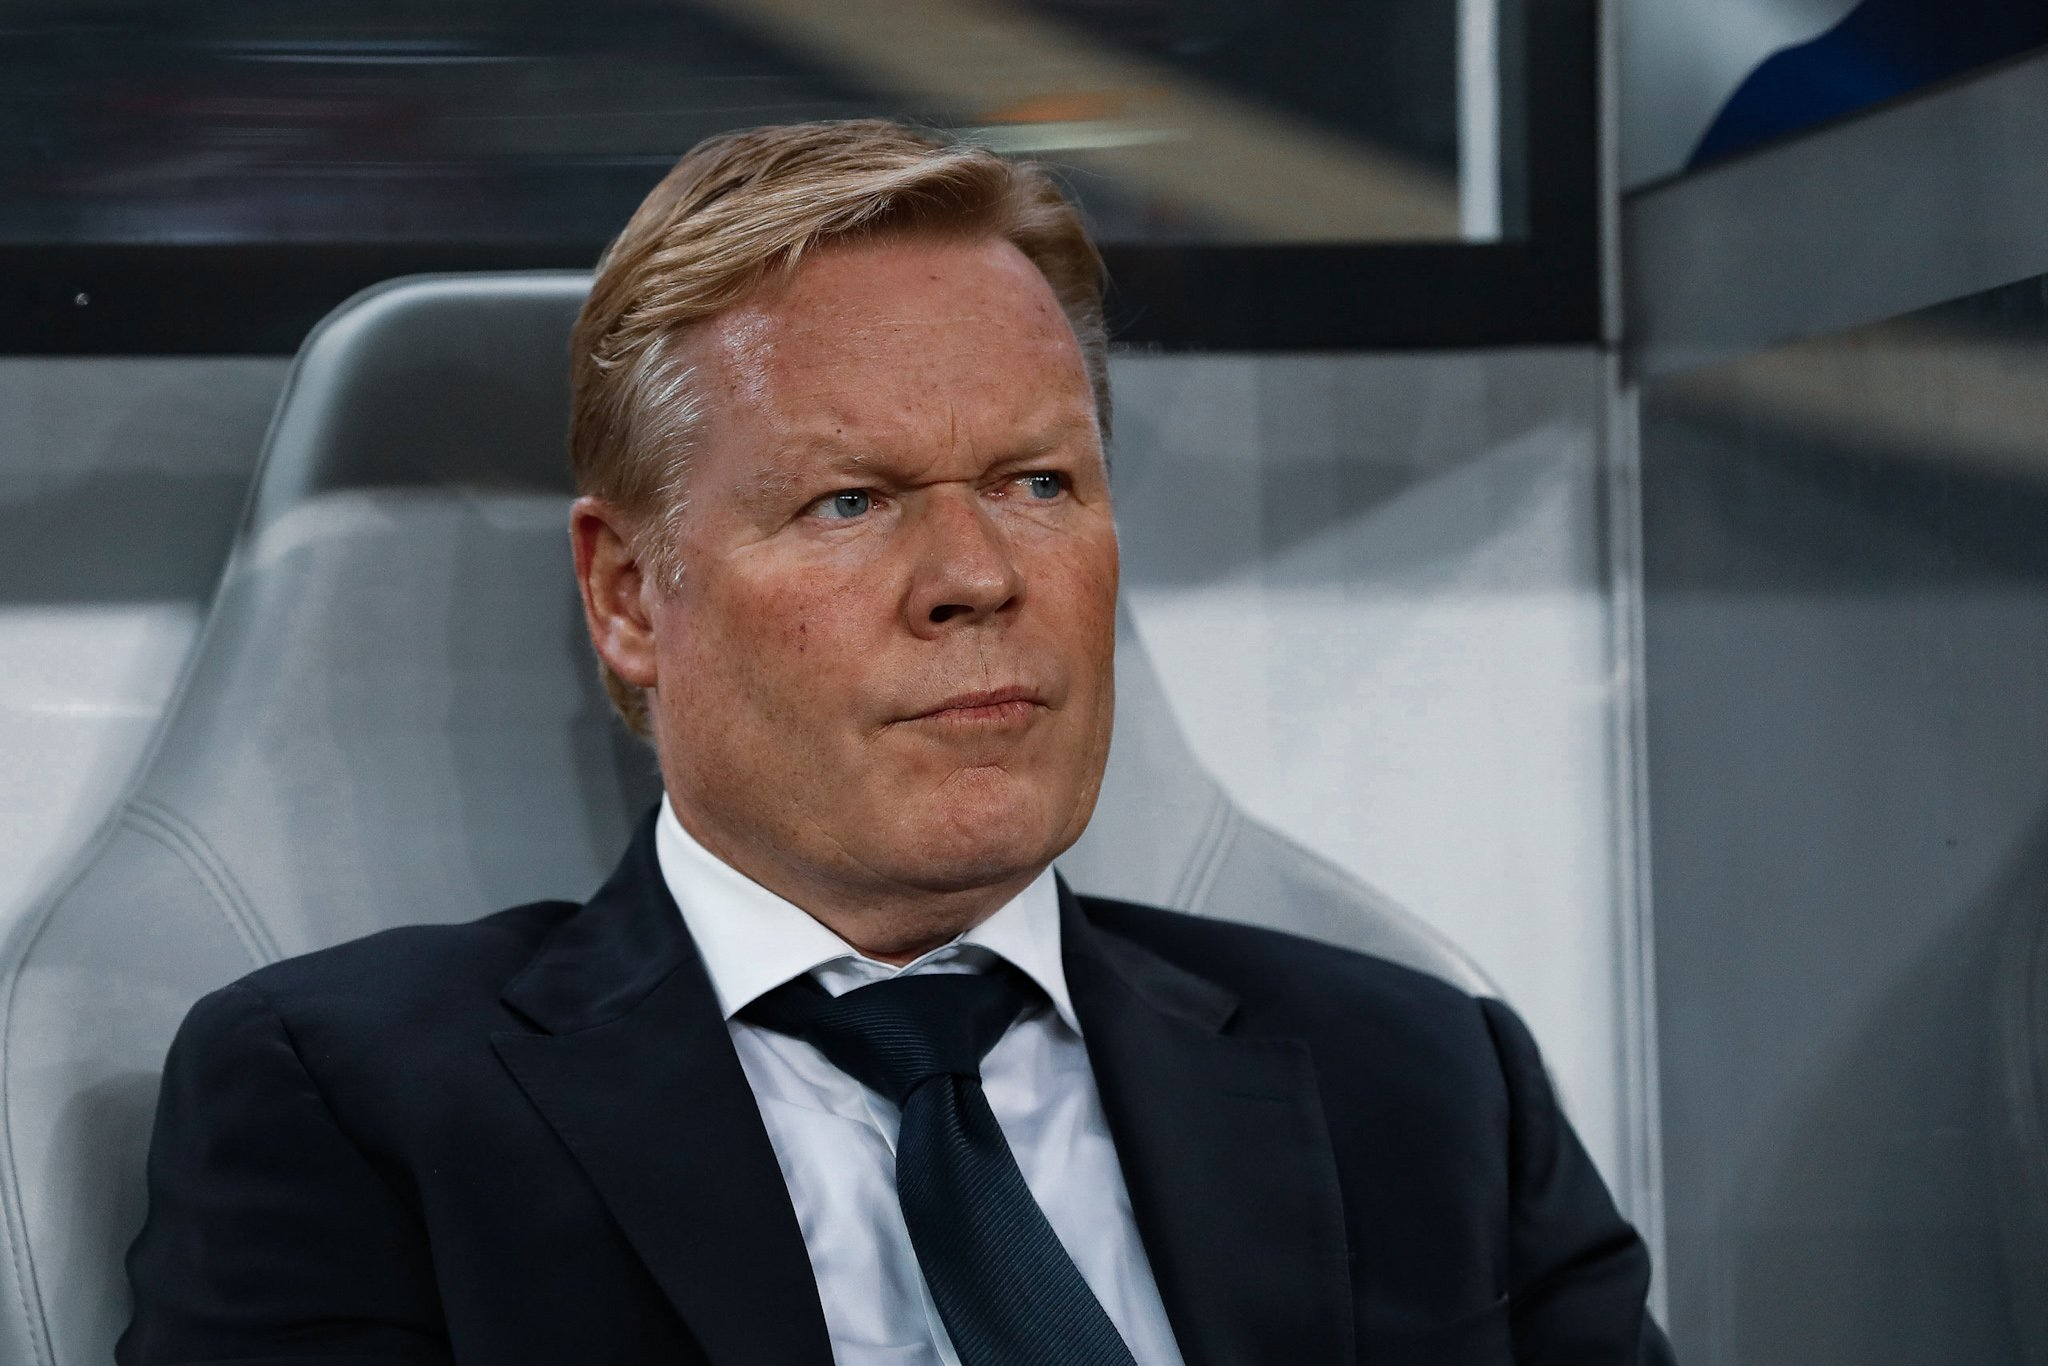 Ronald Koeman at the eye of the storm as tensions rise in Barcelona   Barca  Universal